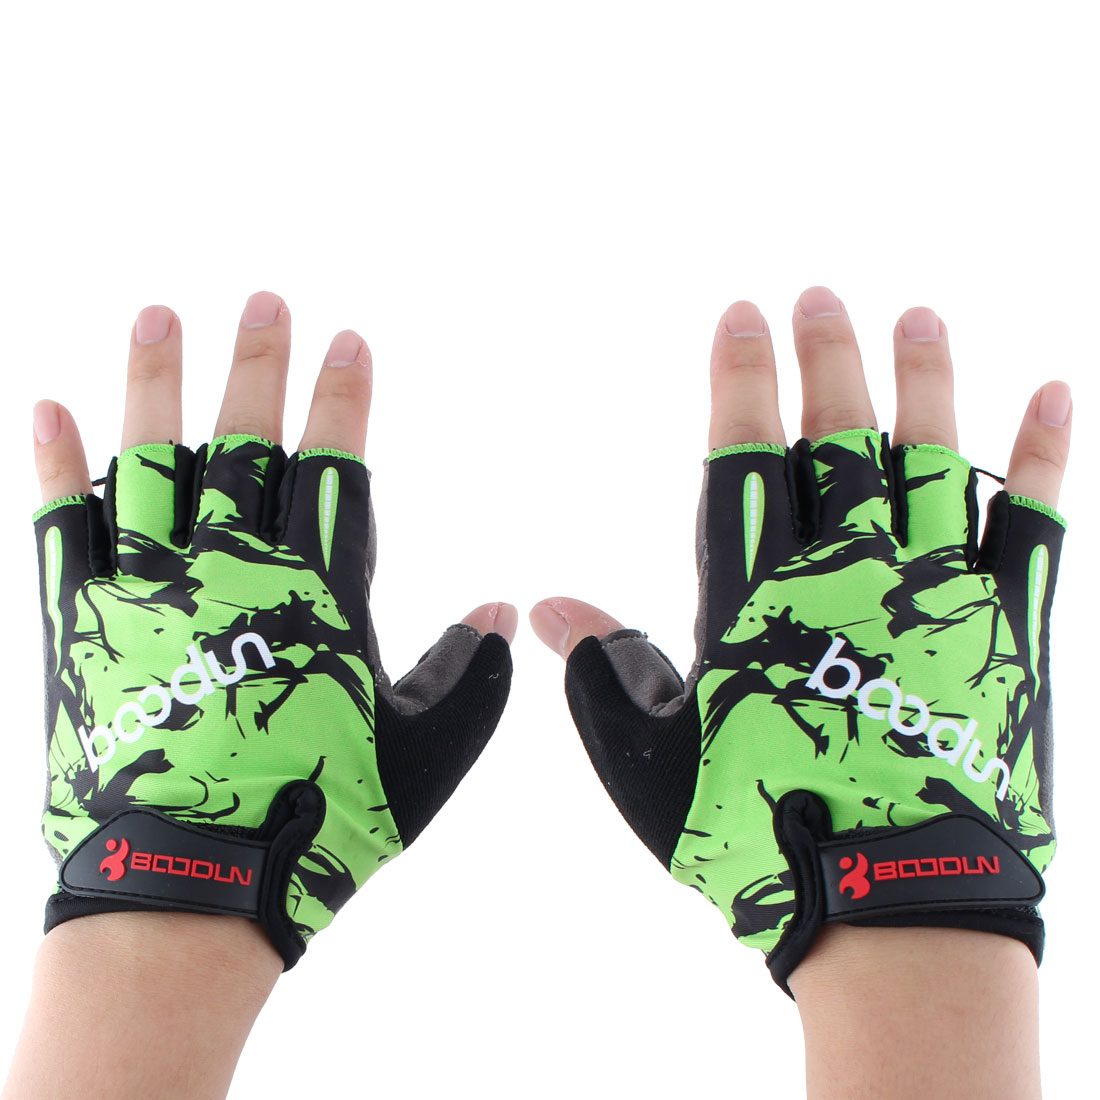 BOODUN Authorized Polyester Exercise Sports Gym Lifting Training Bodybuilding Protector Half Finger Fitness Gloves Green XL Pair